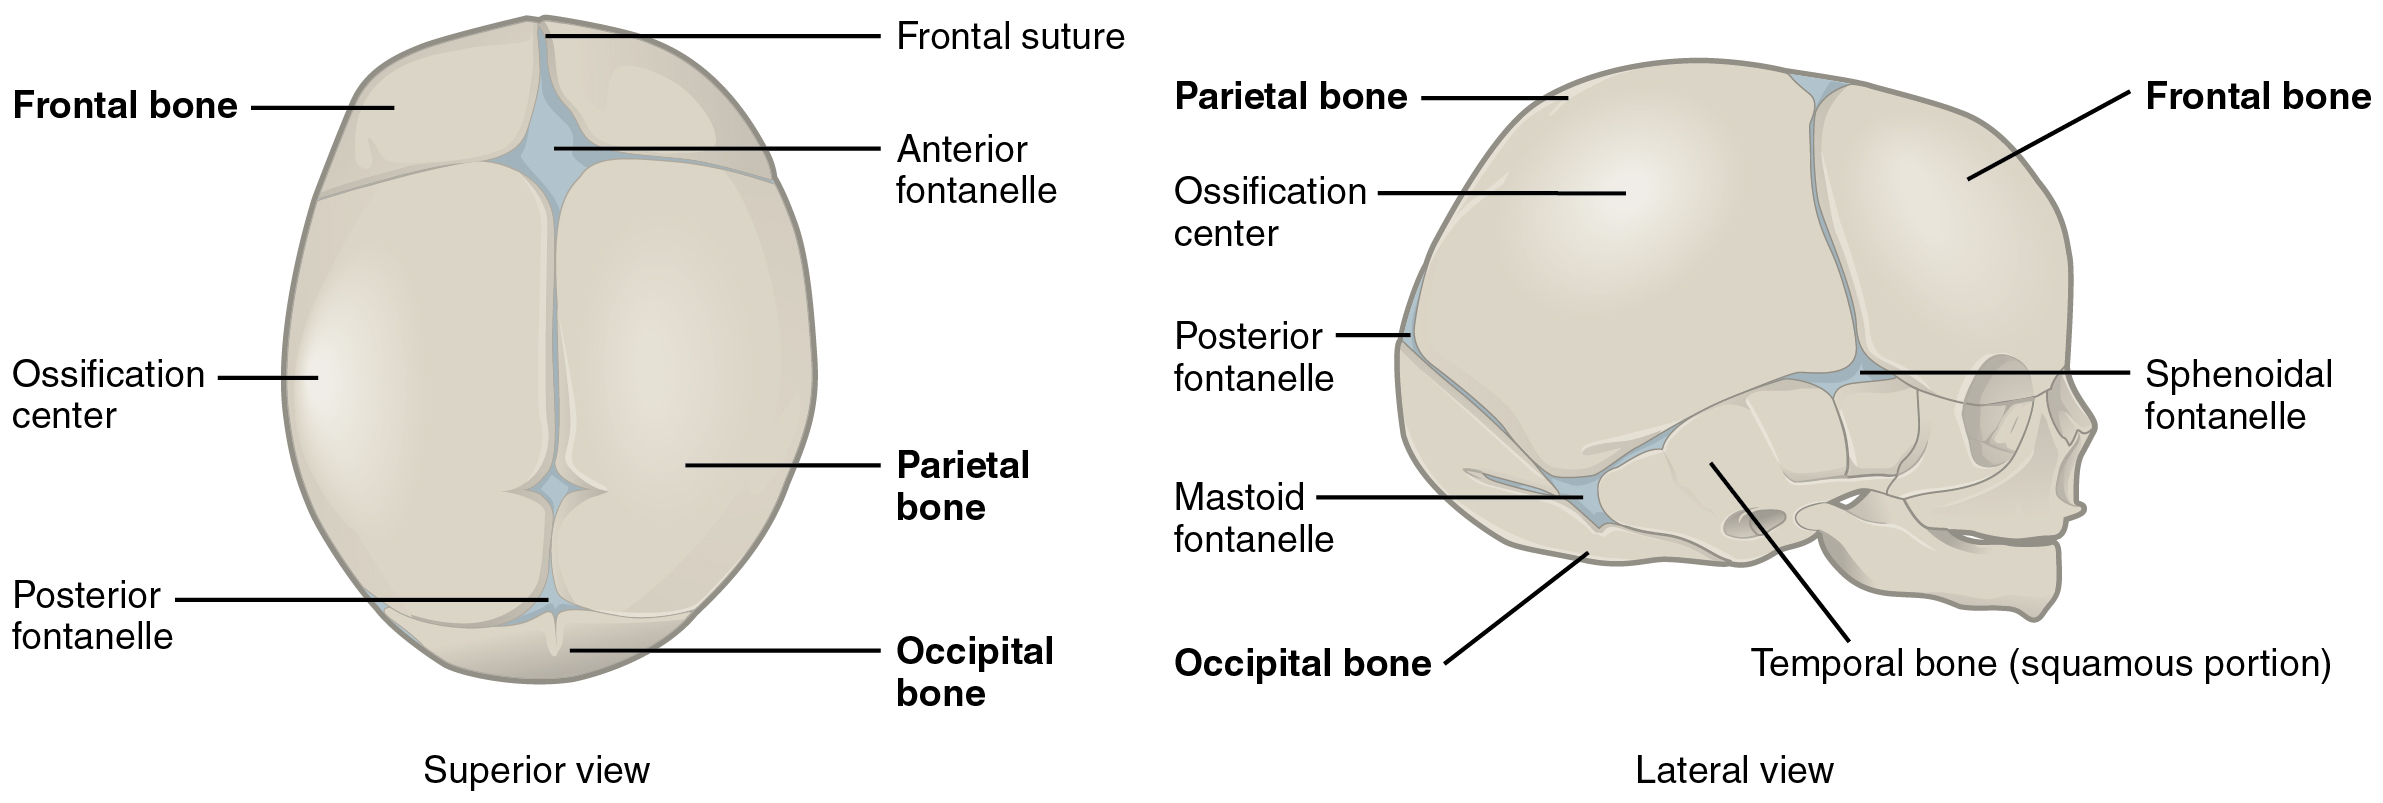 7 5 Embryonic Development Of The Axial Skeleton  U2013 Anatomy